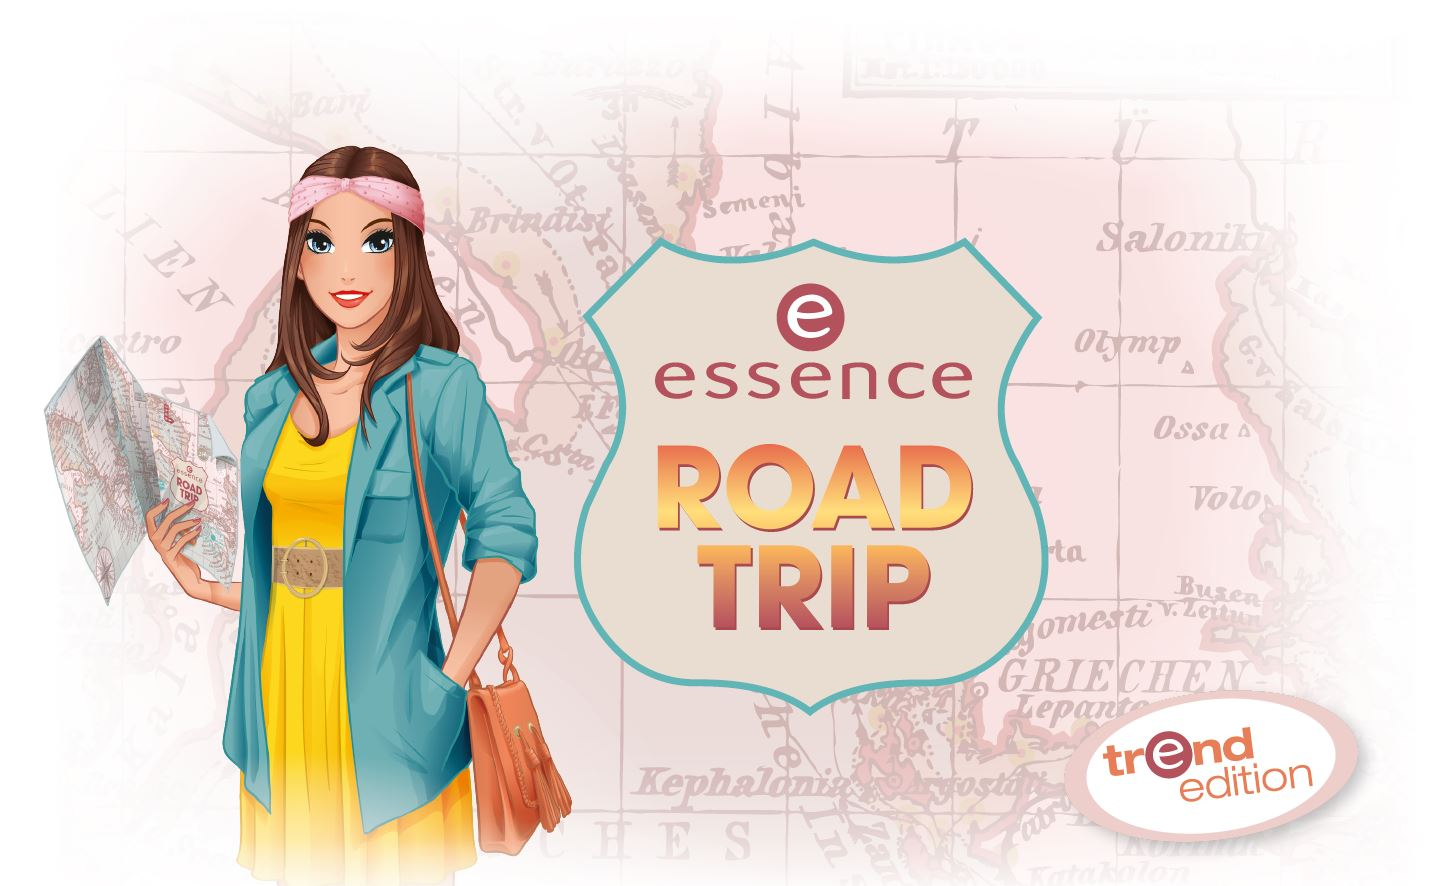 Essence Trend Edition Road Trip Cover